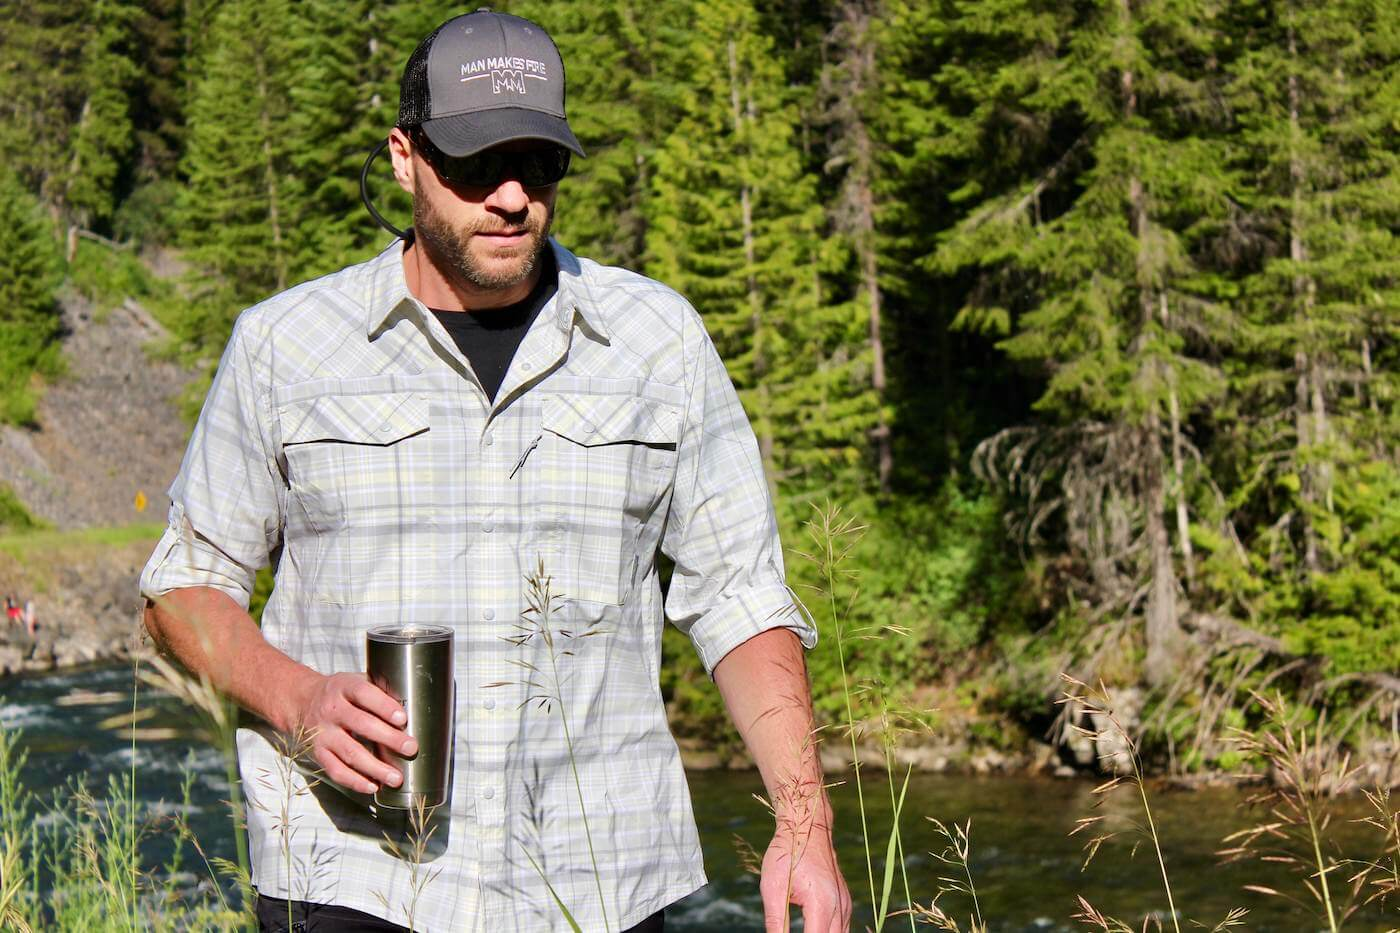 This photo shows the author wearing, testing, and reviewing the Stio Eddy Drift LS shirt near a river.